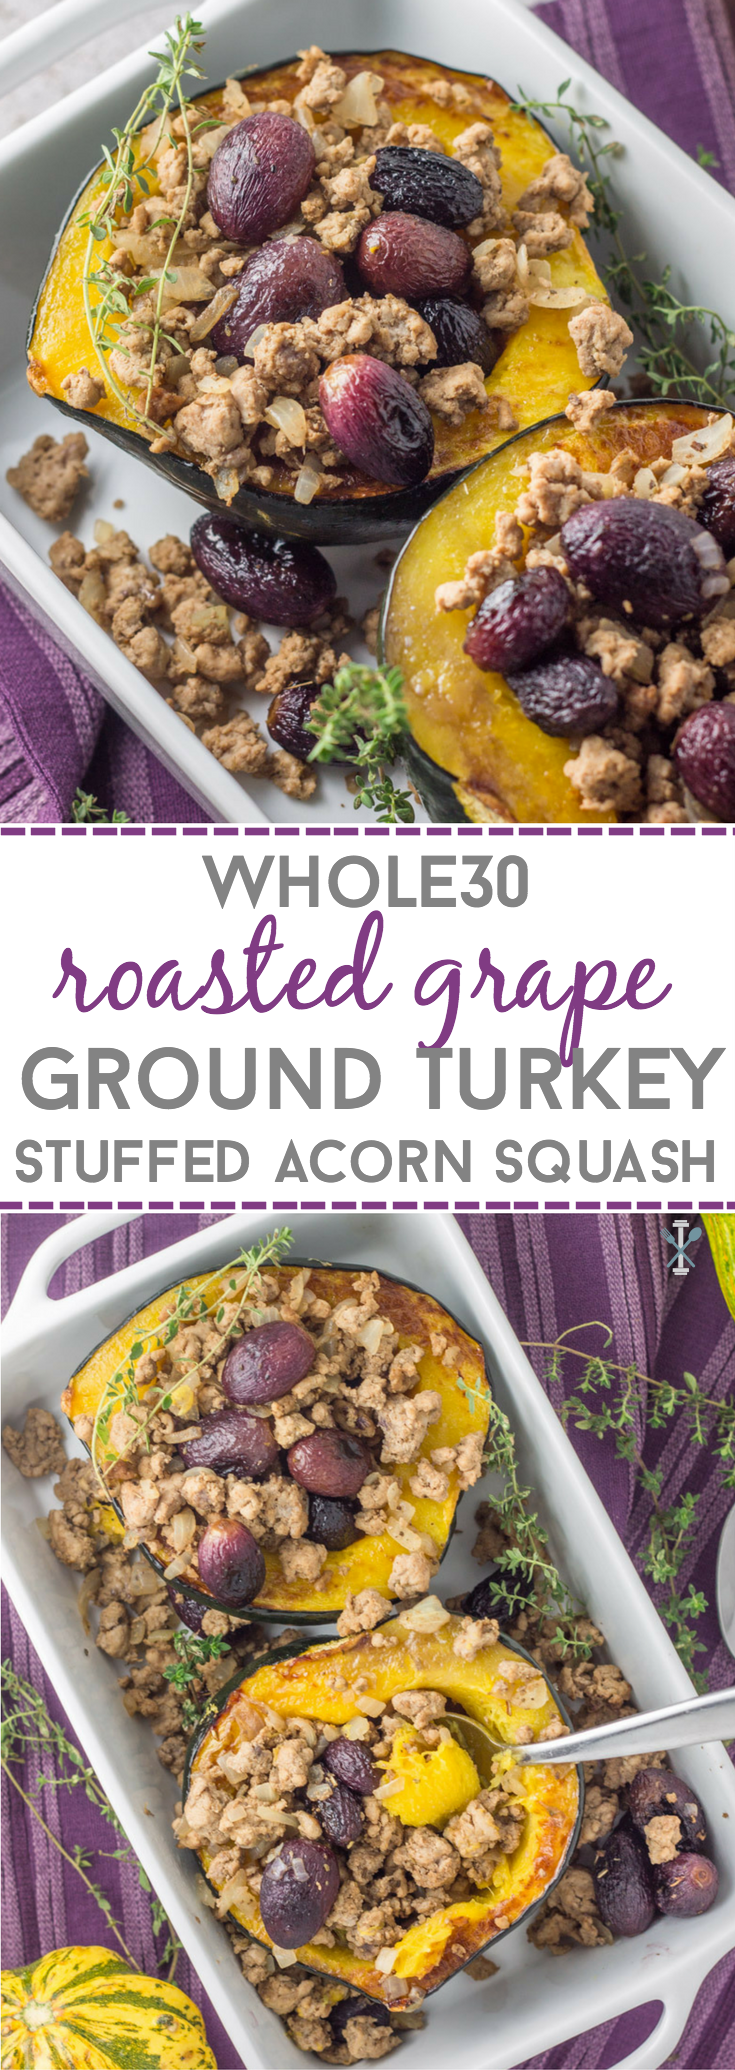 Whole30 Roasted Grape Ground Turkey Stuffed Acorn Squash Recipe